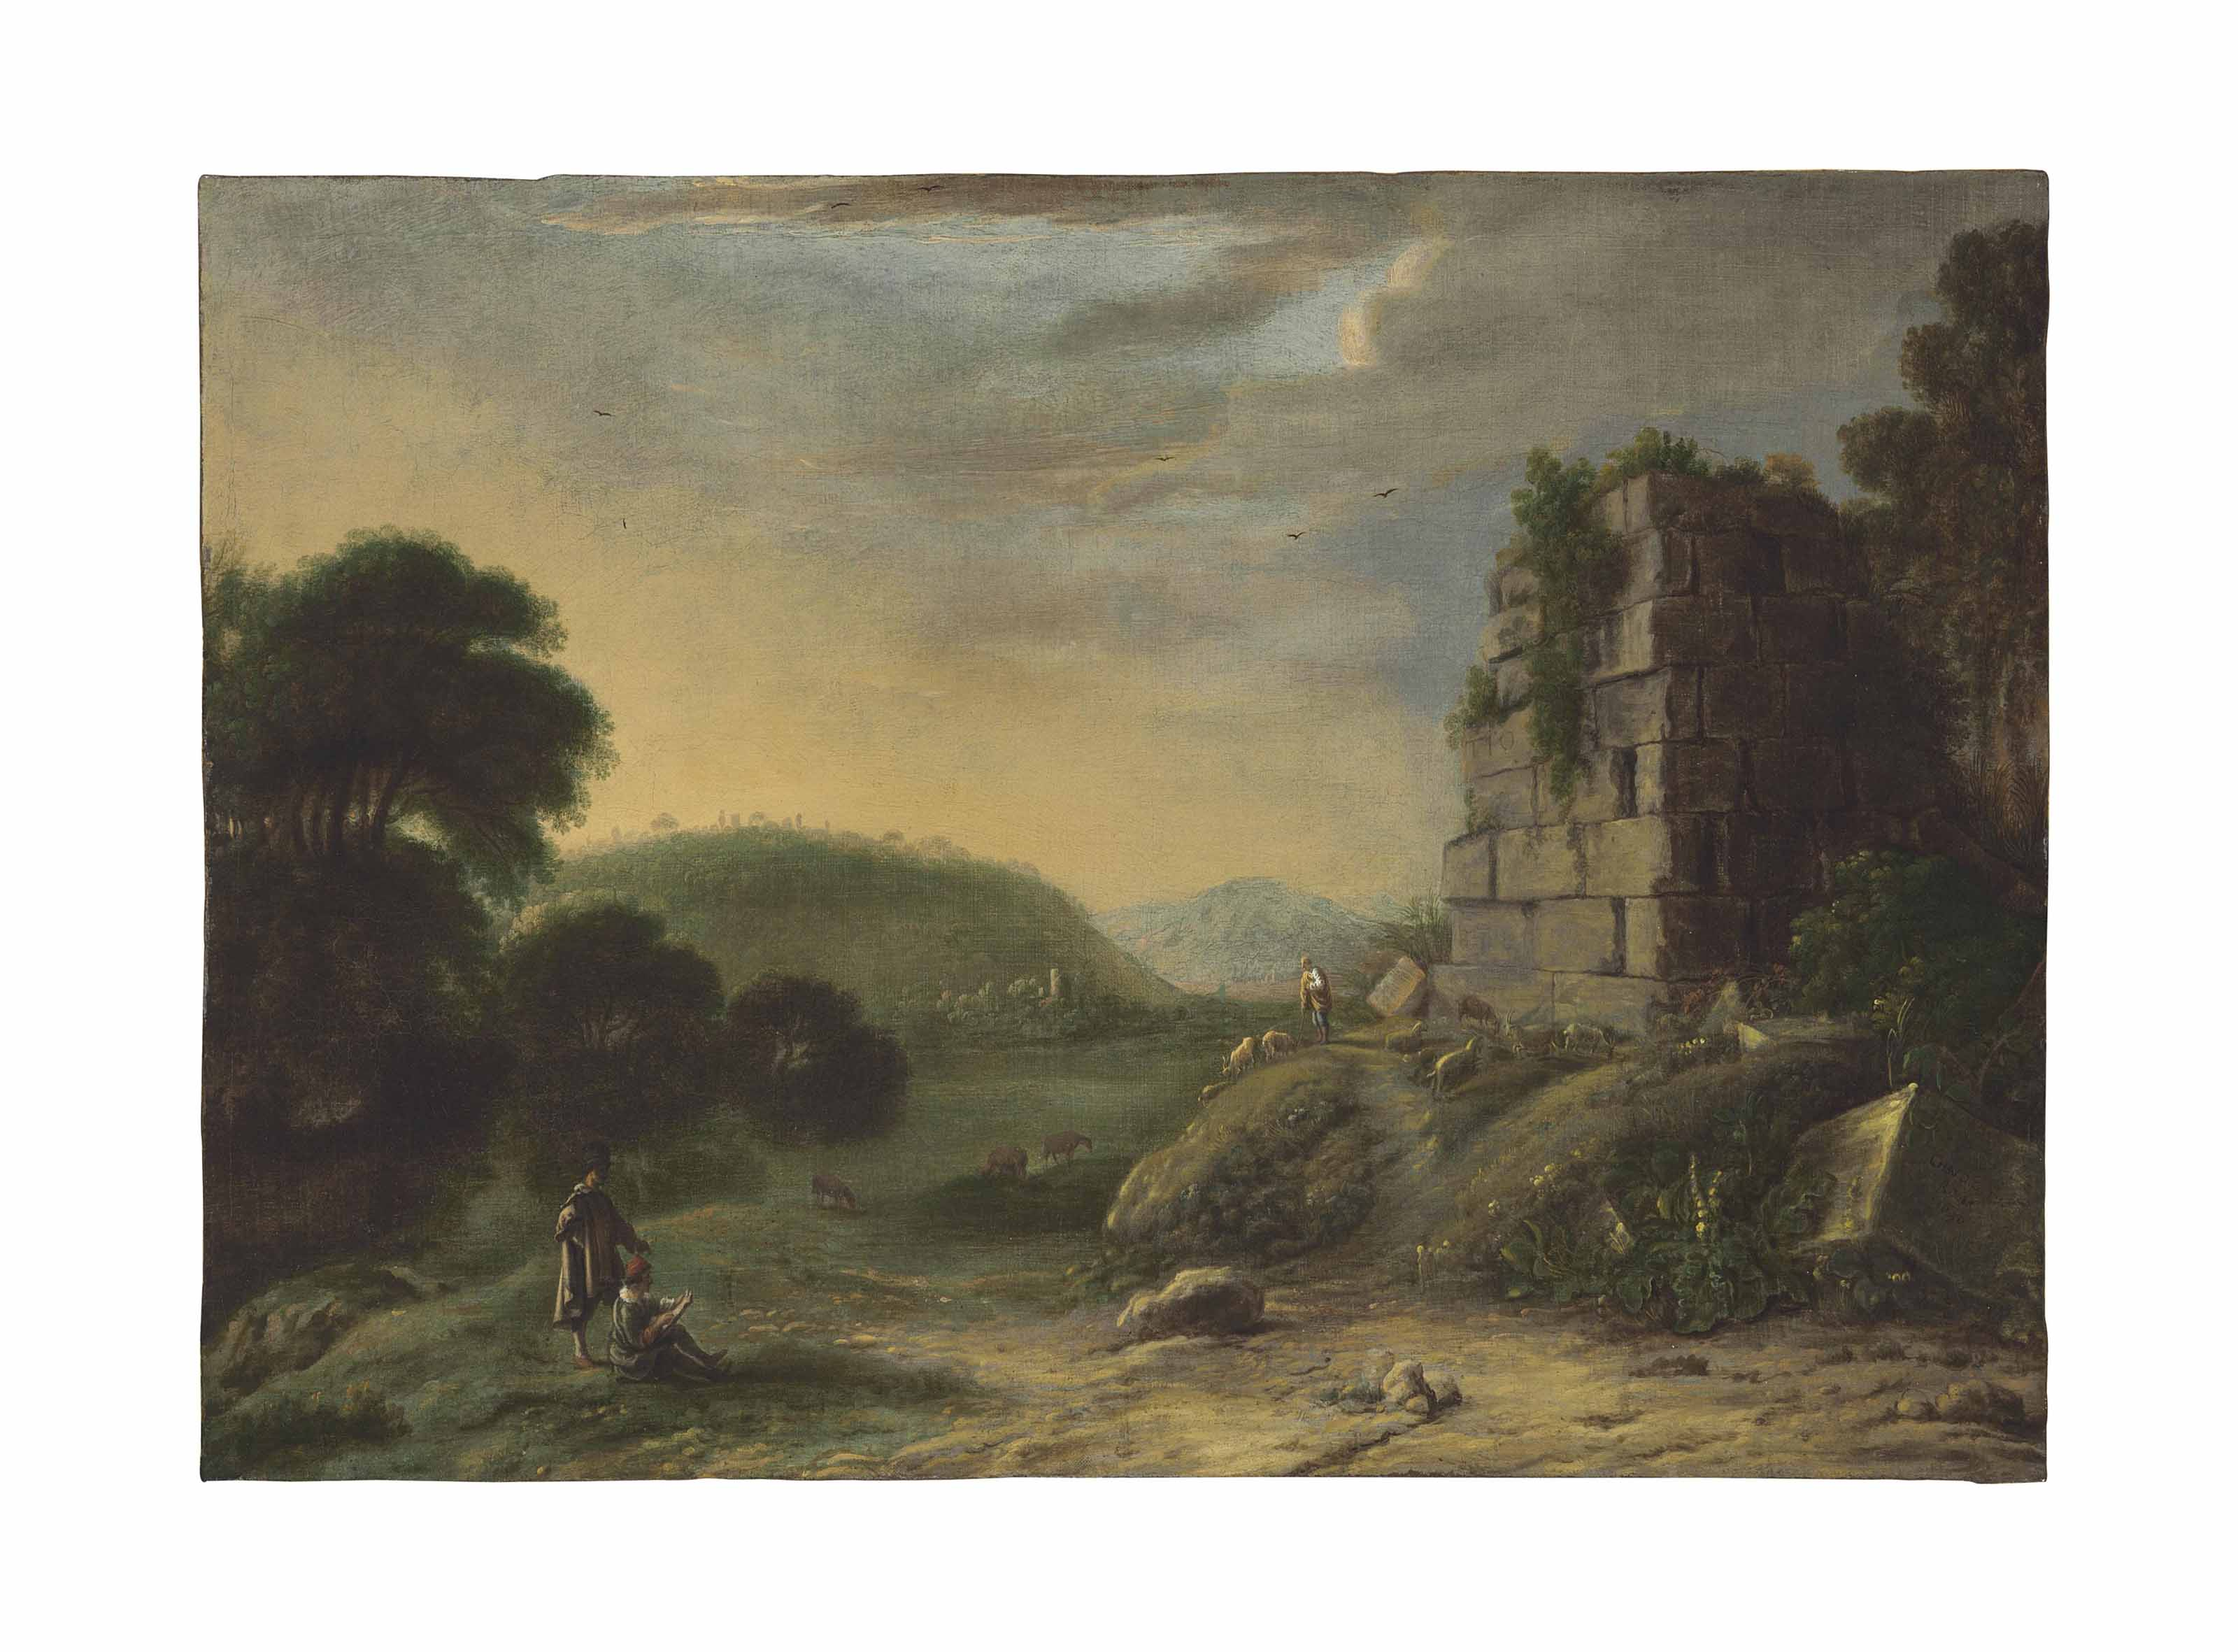 An Arcadian landscape with ruins, an artist drawing in the foreground